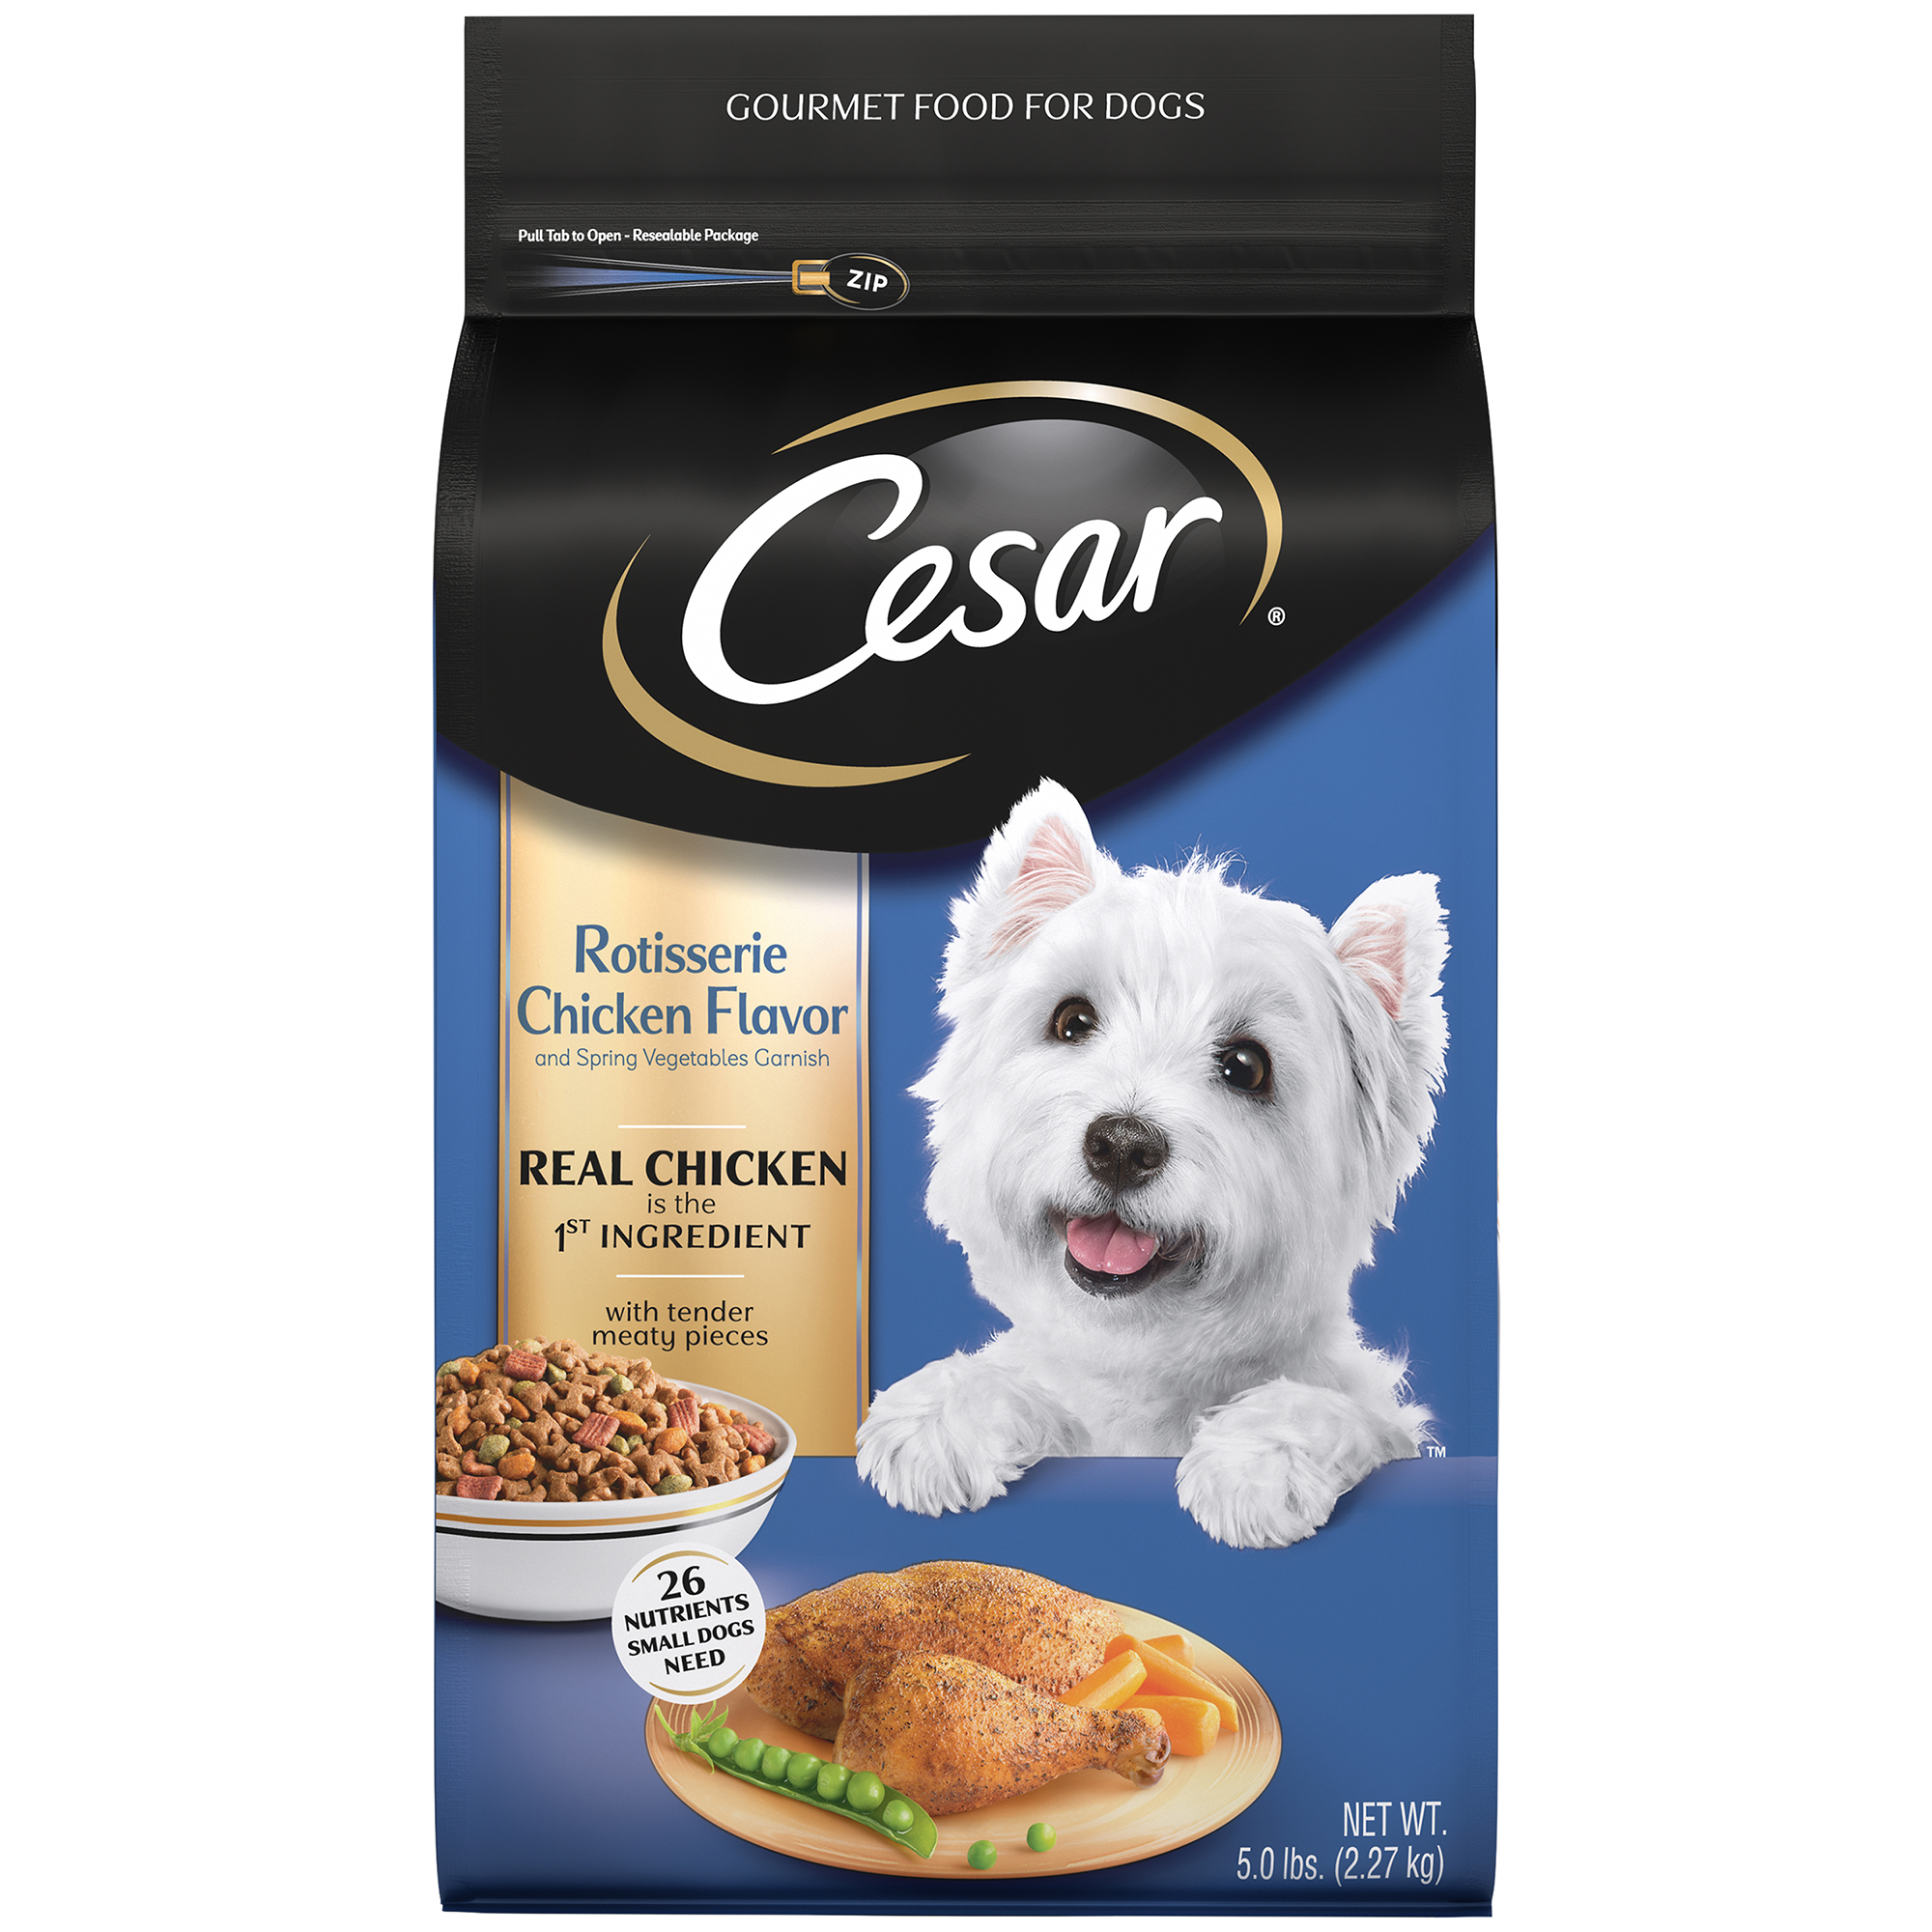 CESAR Small Breed Dry Dog Food Rotisserie Chicken Flavor with Spring Vegetables Garnish, 5 lb. Bag